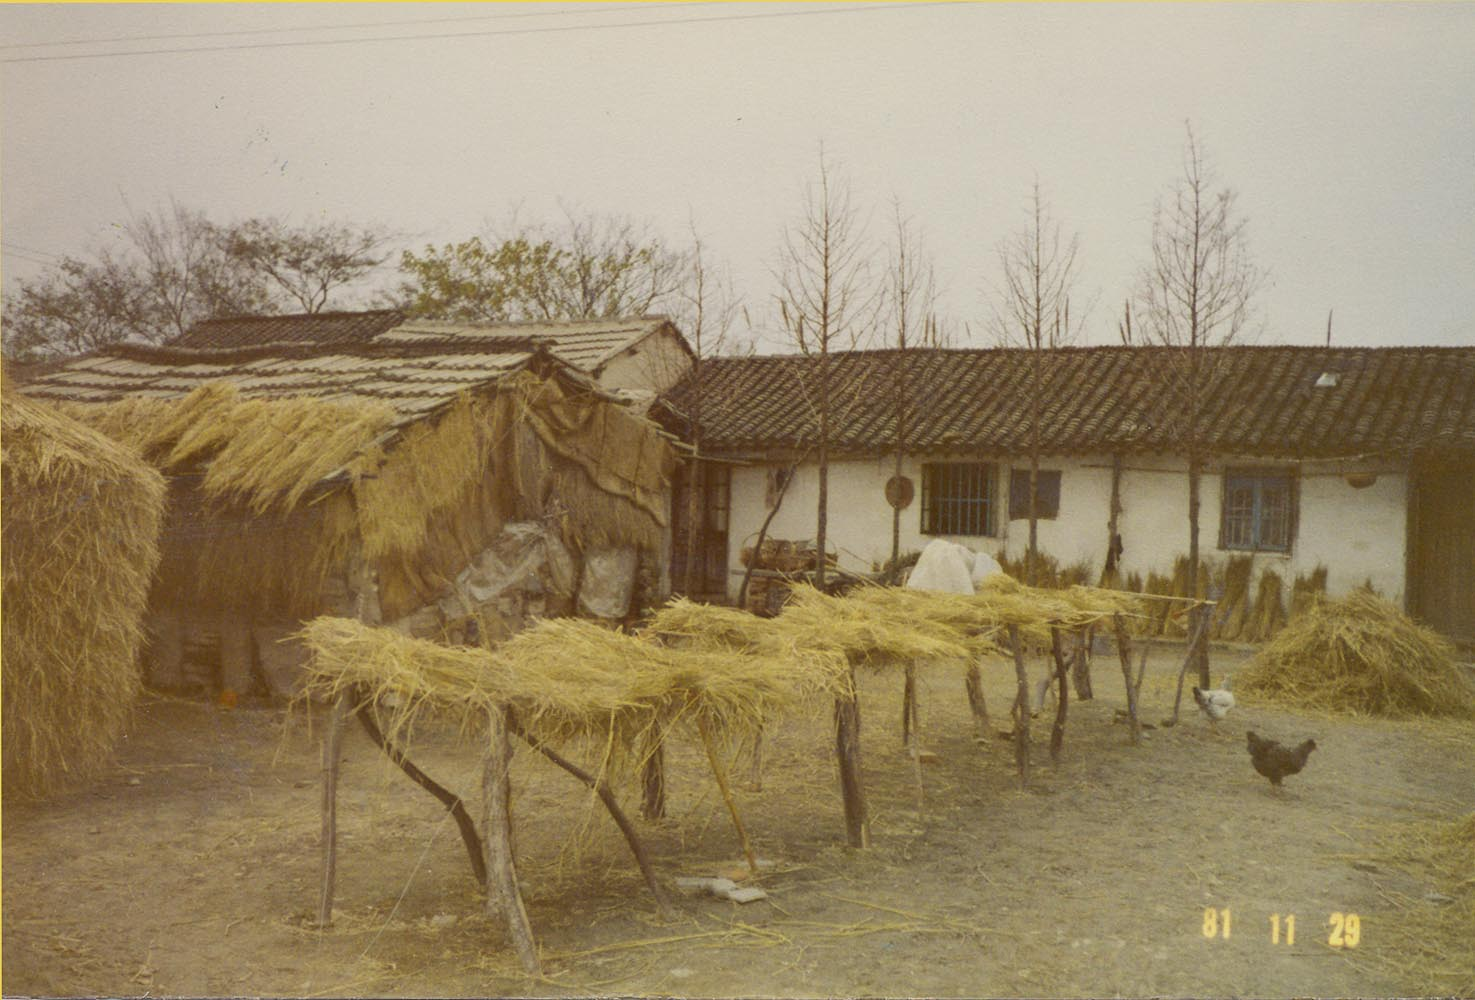 A photo of Dr. James S. C. Chao's village in Jiading County, Shanghai in 1981.